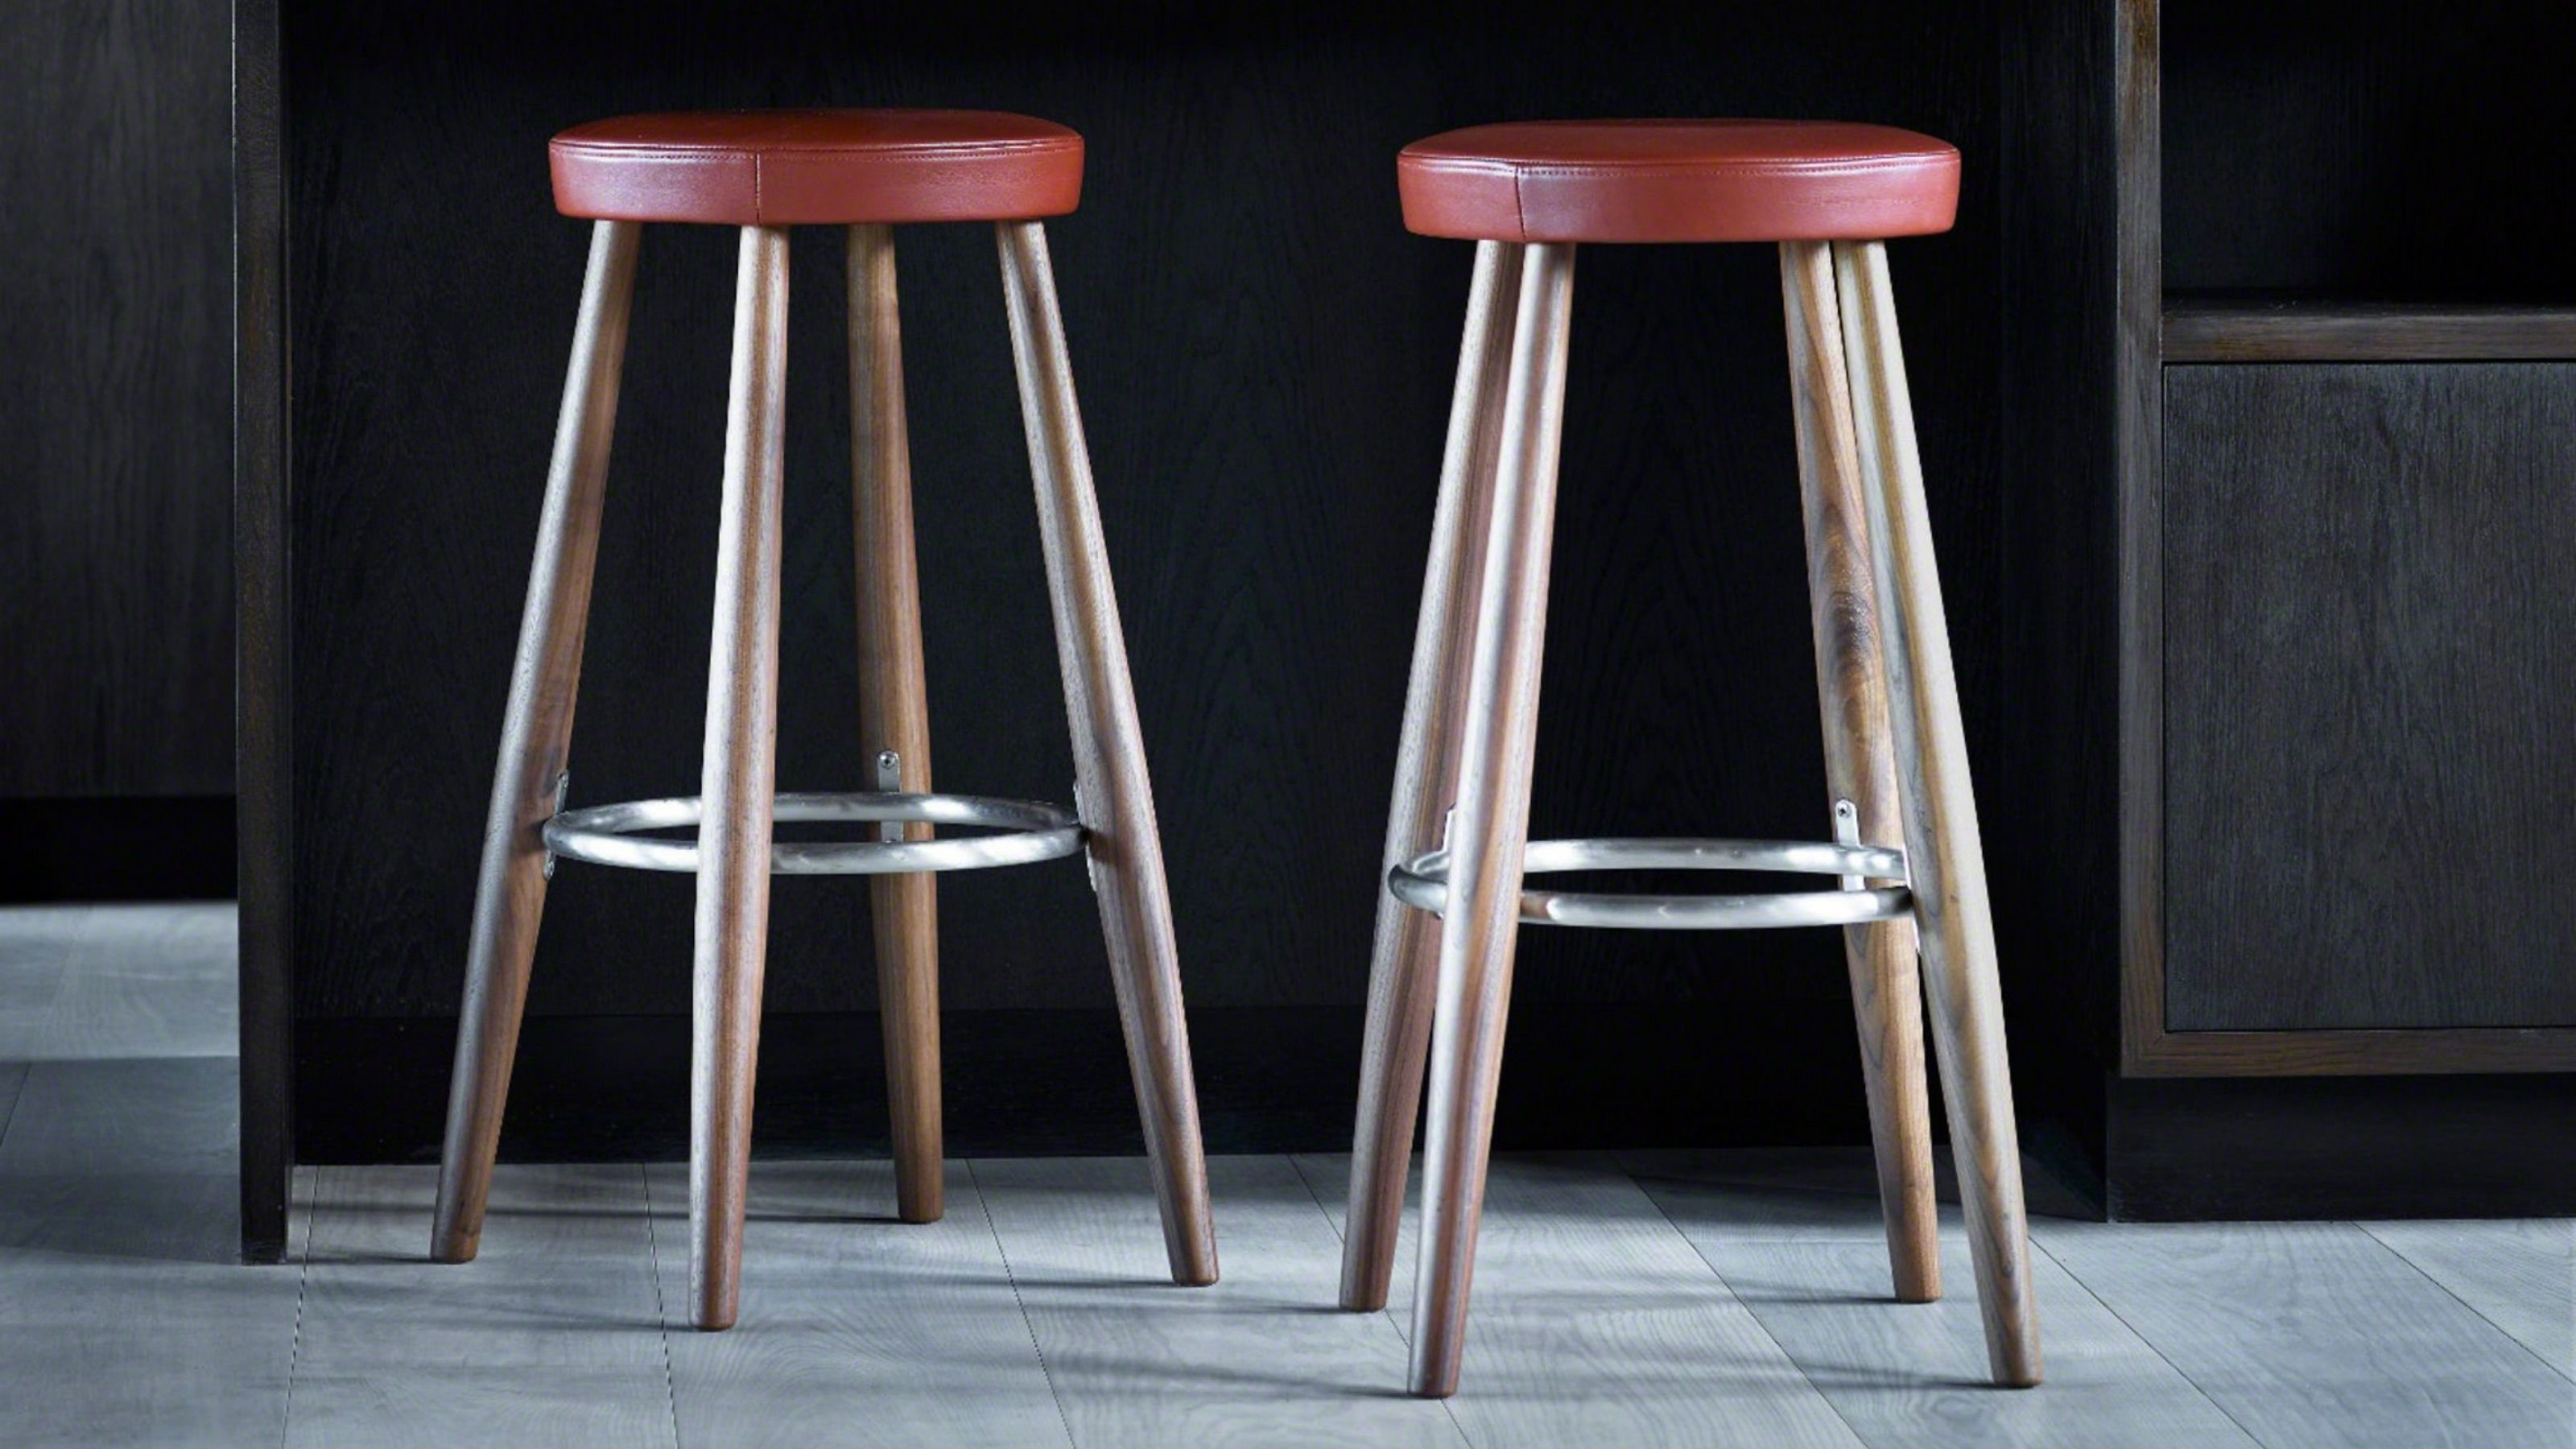 Coalesse Ch56 Ch58 Wood Bar Stools With Leather Seats Steelcase Bar Stools Wood Bar Stools Stool